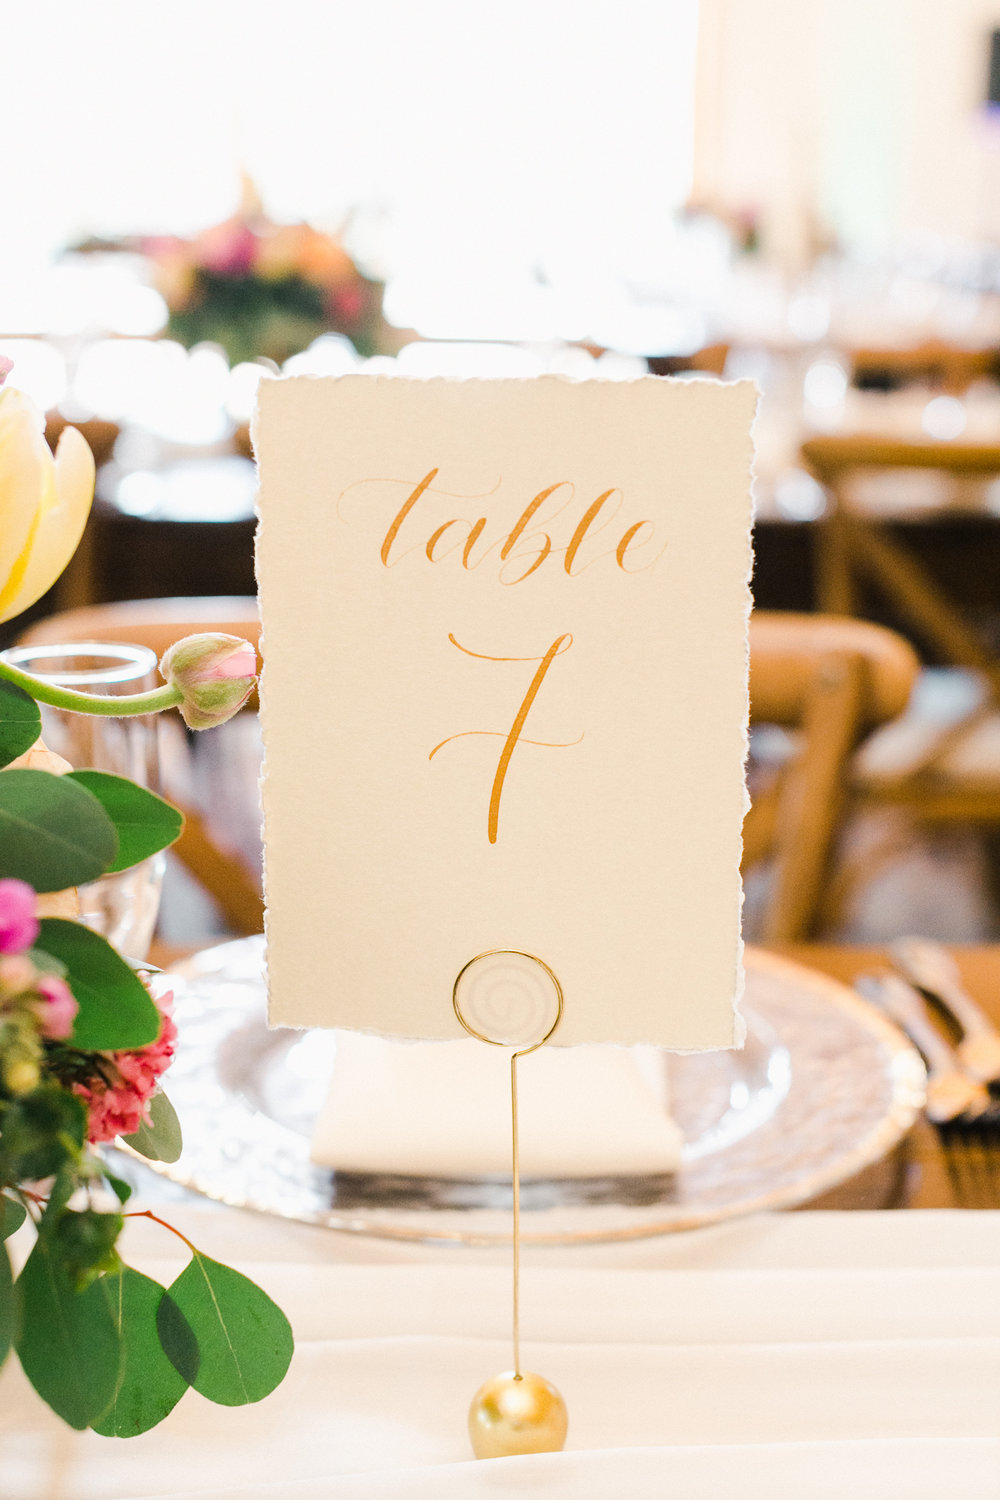 Yosemite wedding table number calligraphy items by paperloveme1.jpg